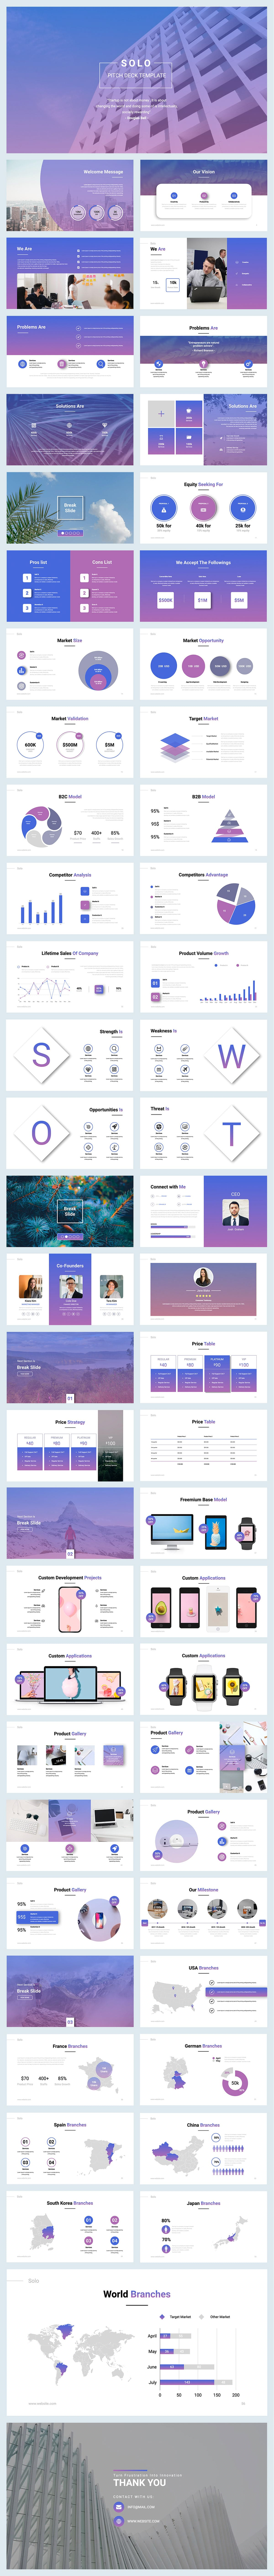 Great template for a stylish presentation. All slides are made in soft lilac color. It features modern infographics, diagrams and interactive blocks.